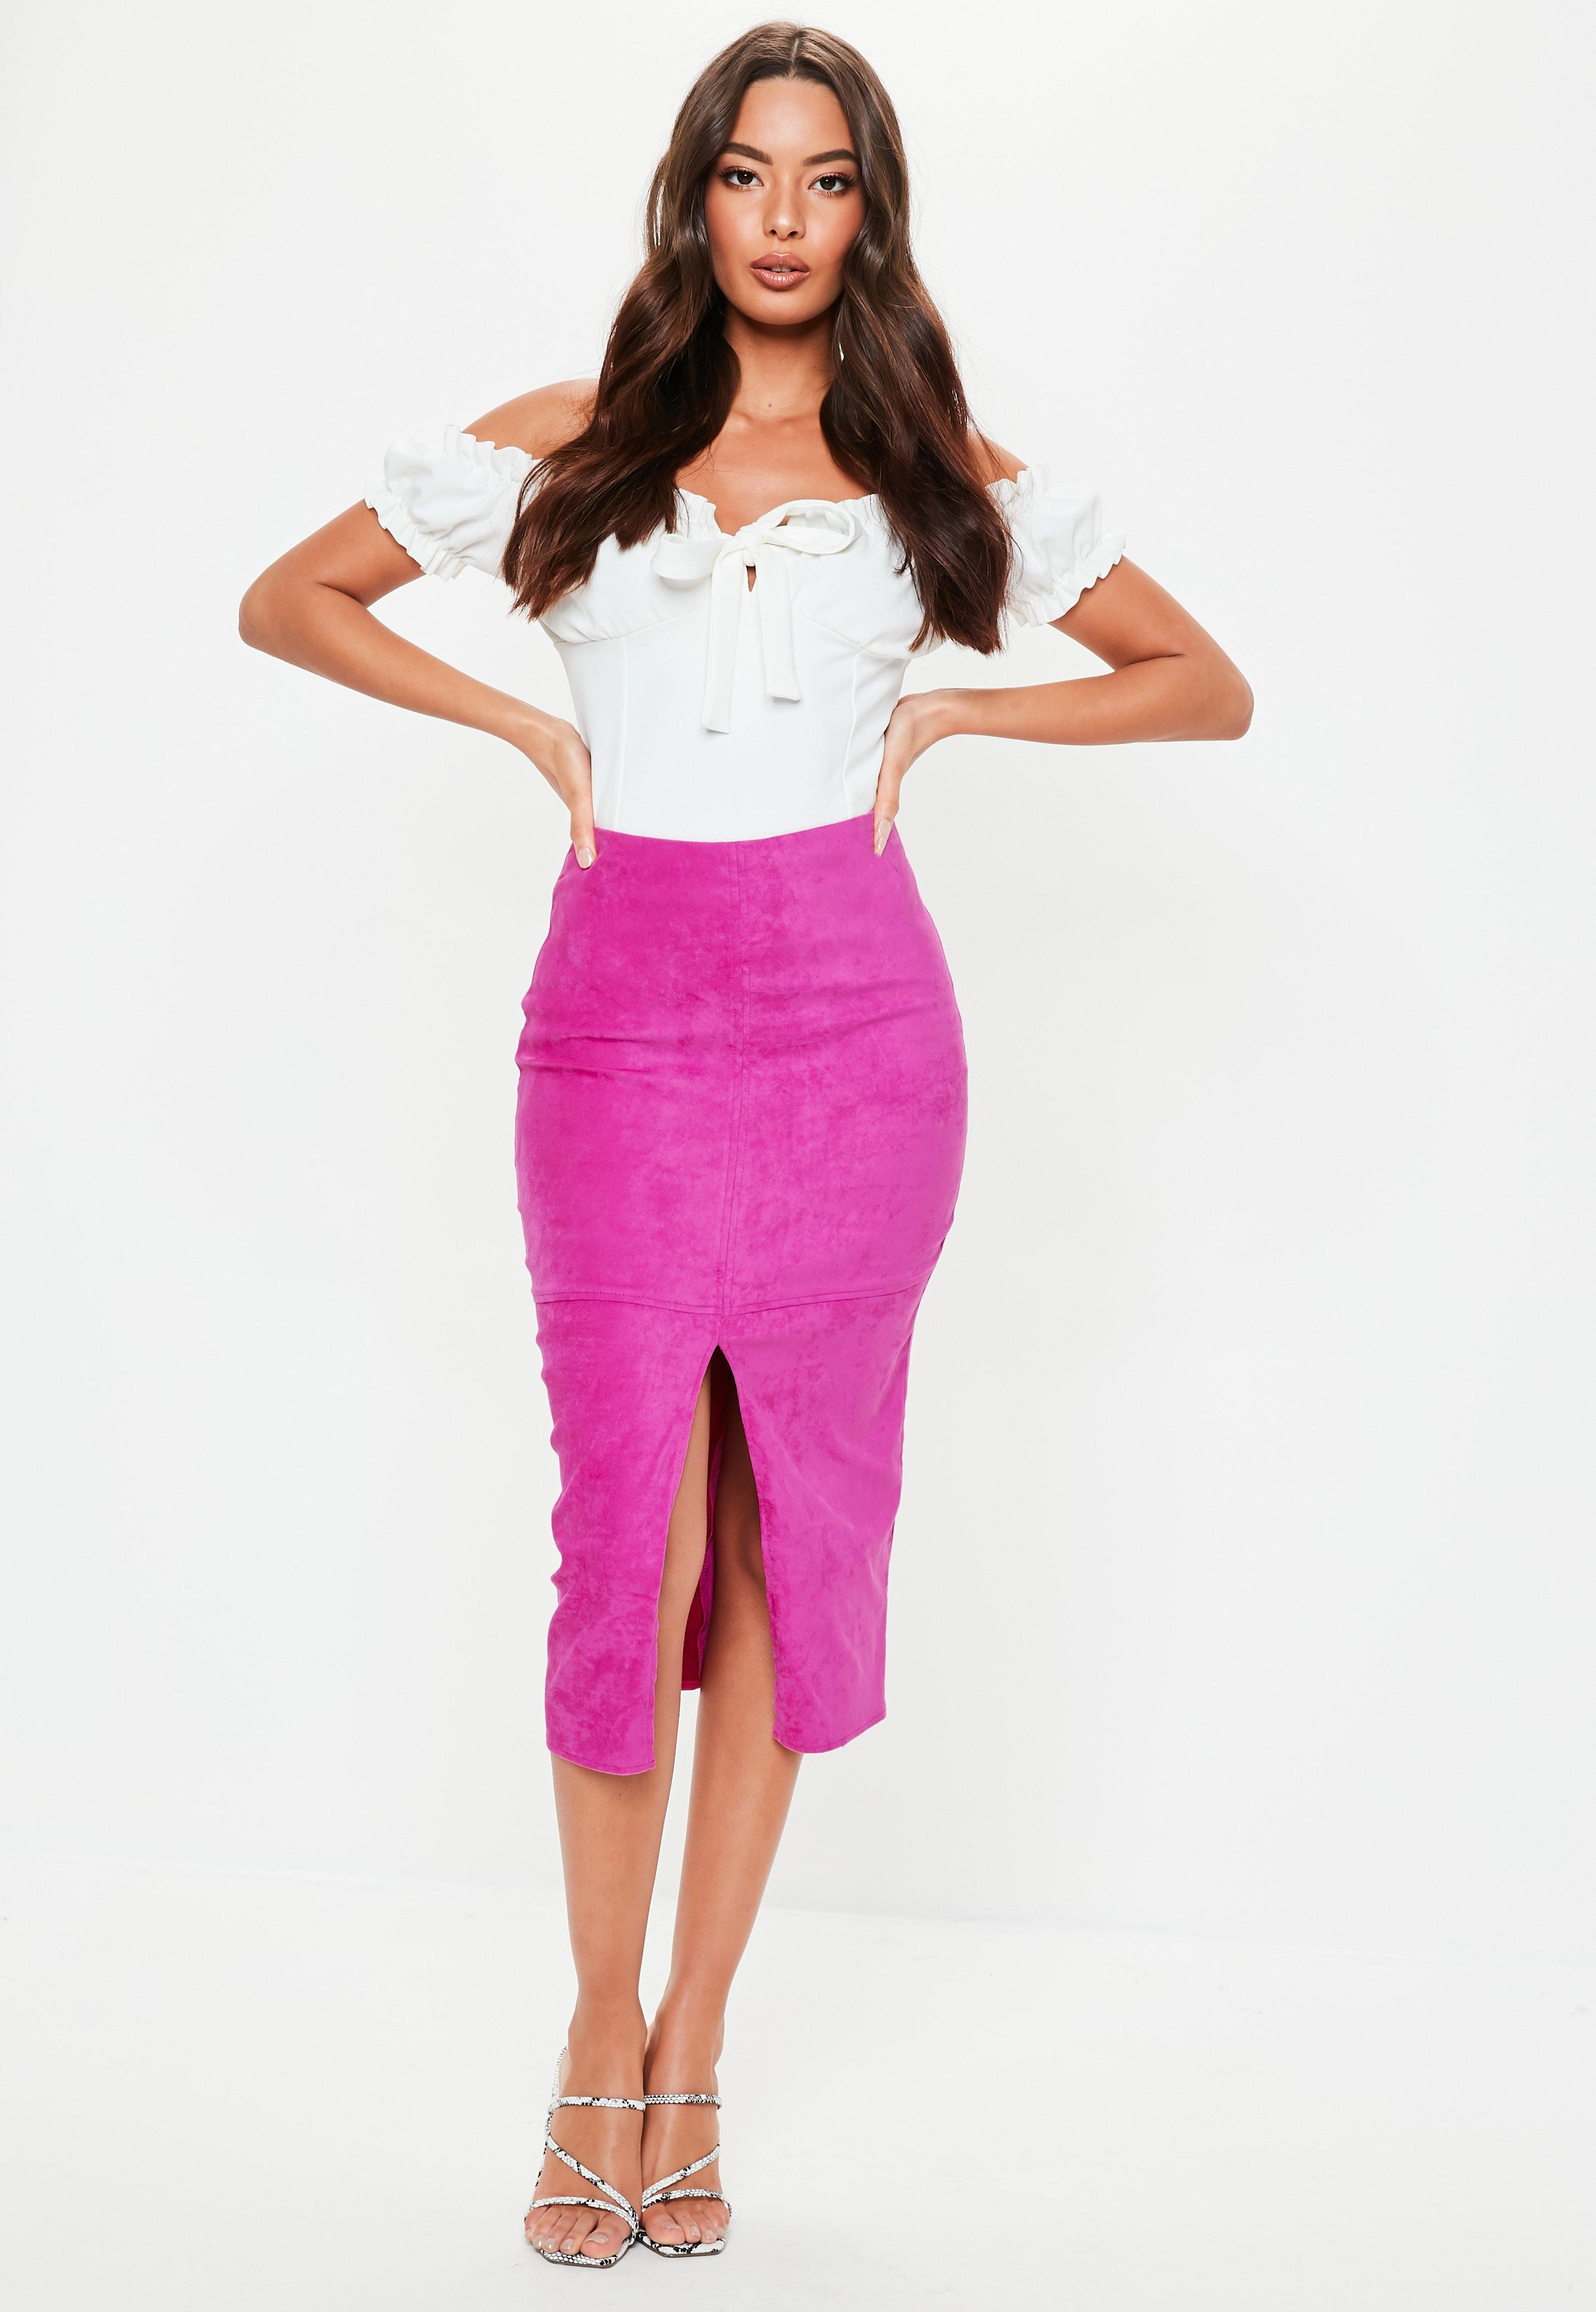 2d9c2e301a64a Pink Skirts | Hot Pink & Light Pink Skirts - Missguided